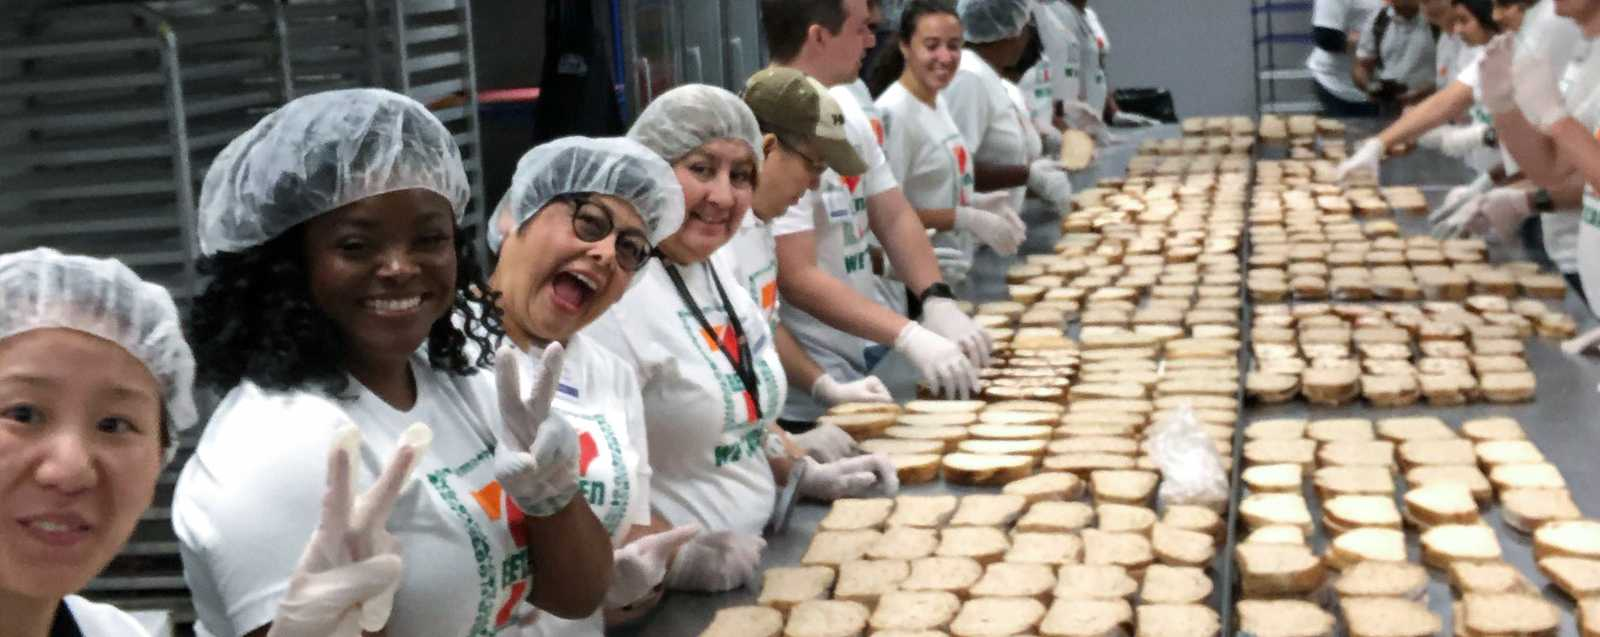 7-Eleven volunteers making sandwiches at hunger busters in Dallas